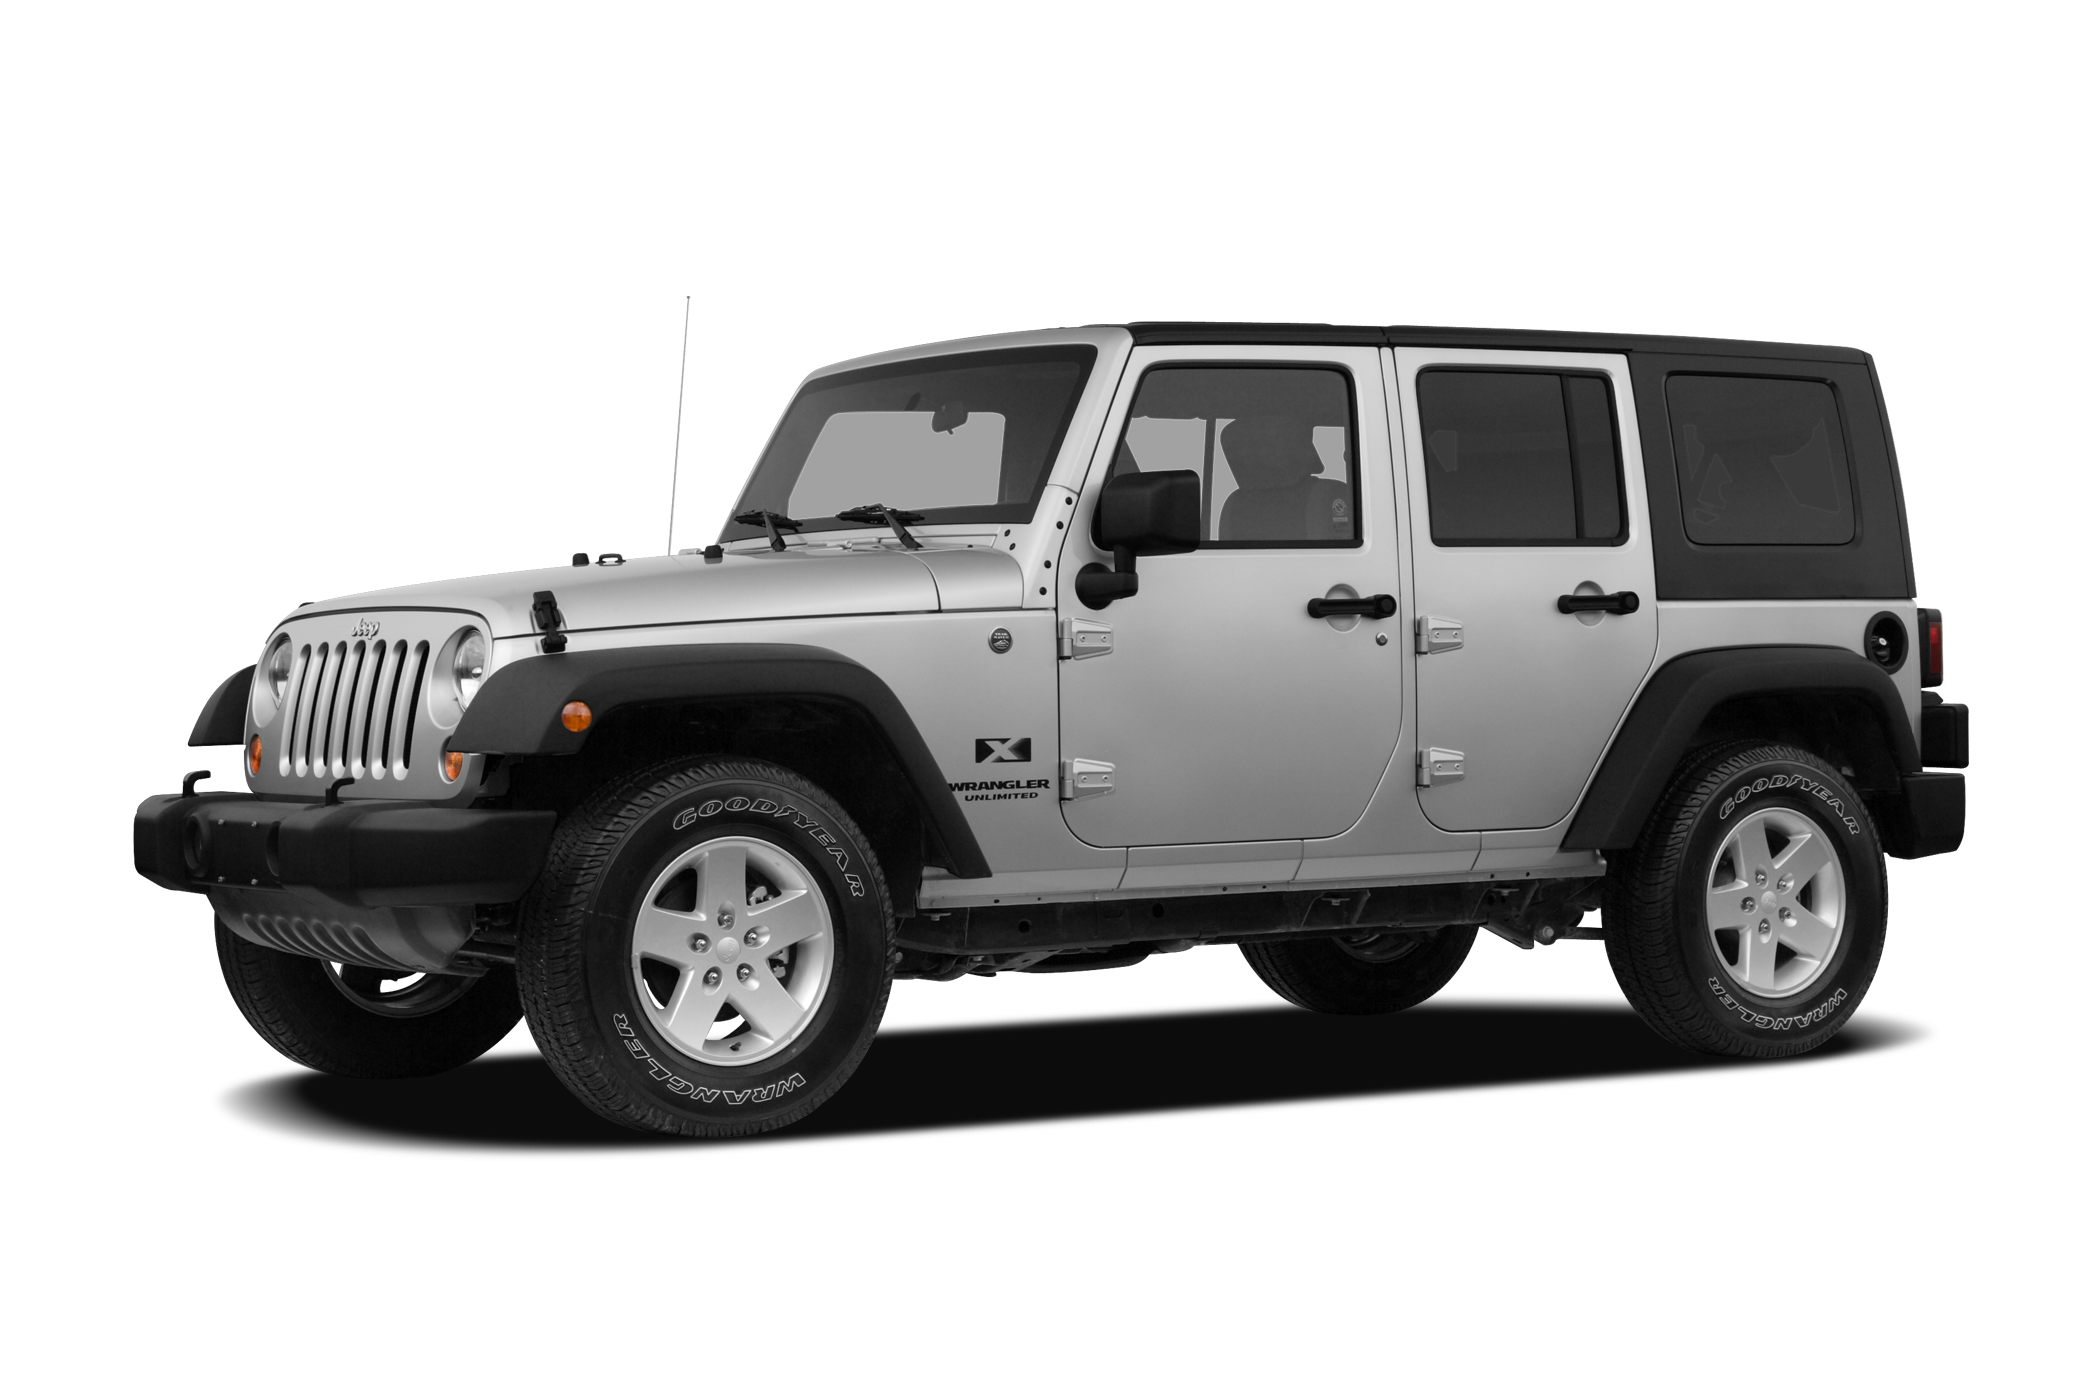 2007 Jeep Wrangler Unlimited X SUV for sale in Newburgh for $0 with 92,097 miles